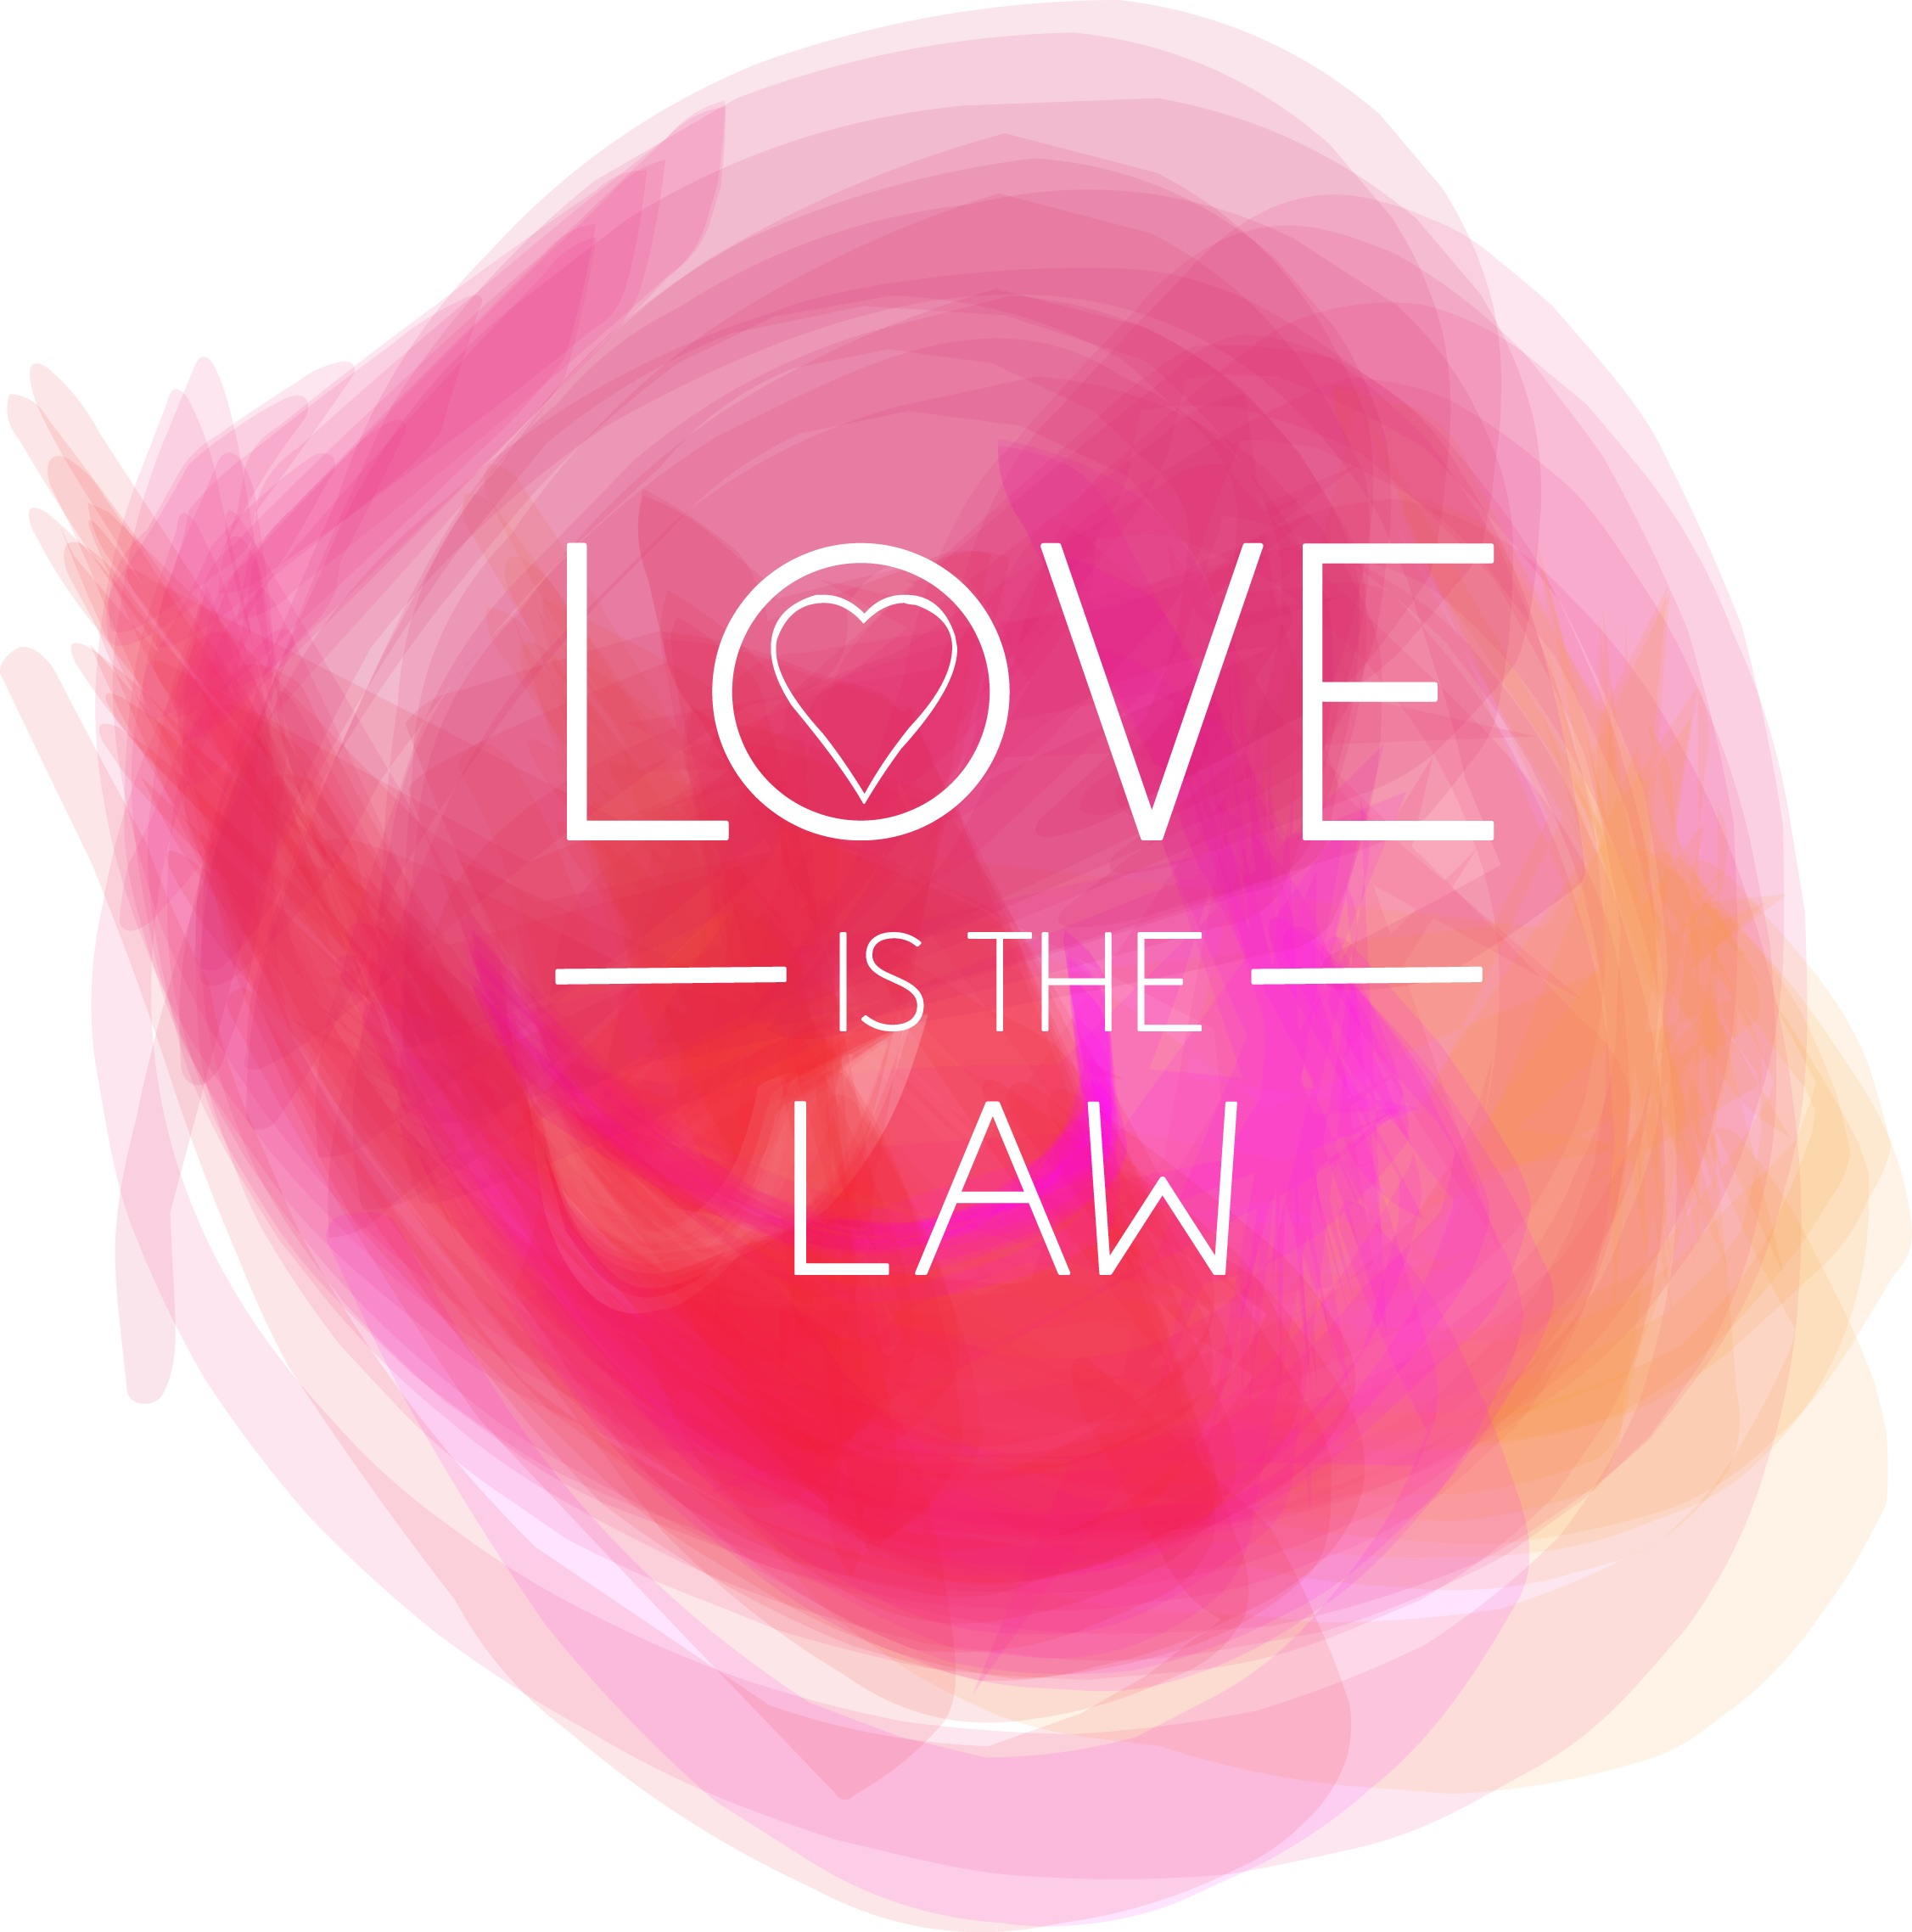 Love is the law.jpg